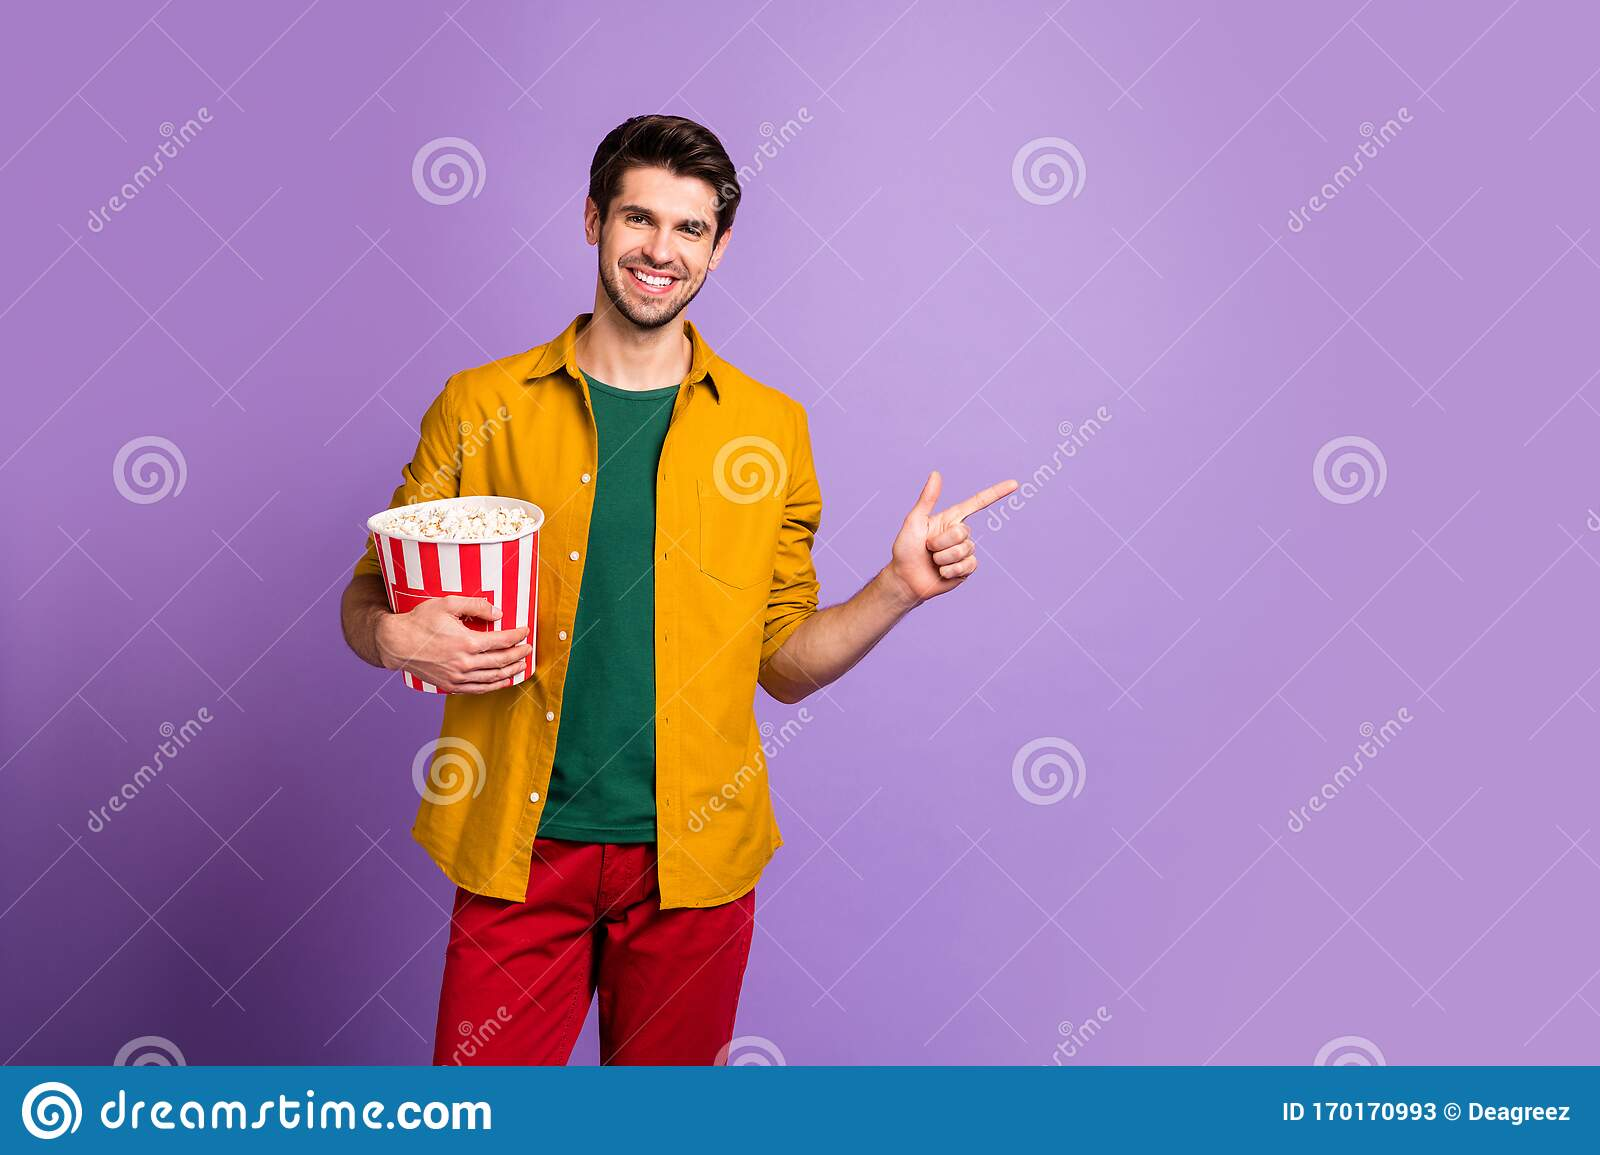 Look New Cinema Film Portrait Of Positive Guy Hold Big Pop Corn Box Point Index Finger Copy Space Recommend Movie Stock Image Image Of Casual Food 170170993